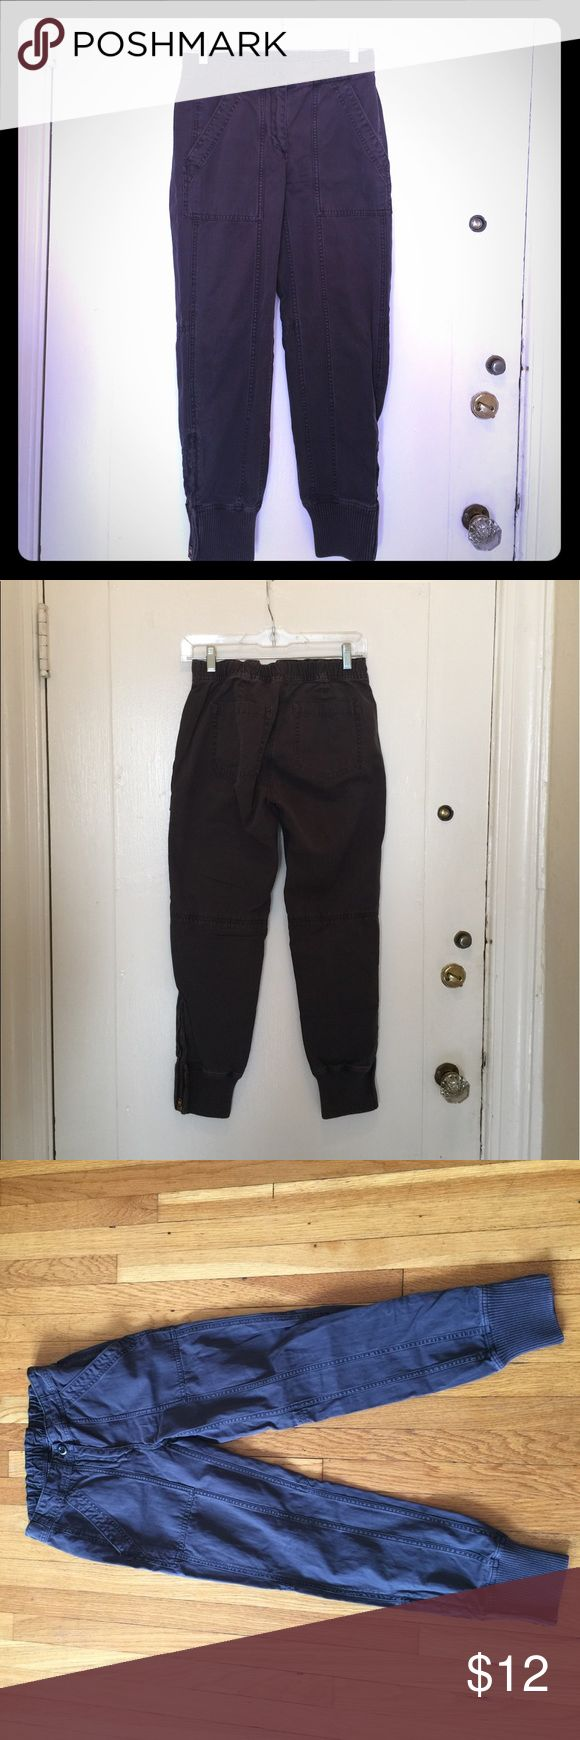 J. Crew Black Cropped Slim fit Cargo Pant Cropped faded black pant ( not a deep black color) , cotton, machine wash, zipper hem, elastic waist, cropped ankle fit. cute with a tee! J. Crew Pants Ankle & Cropped